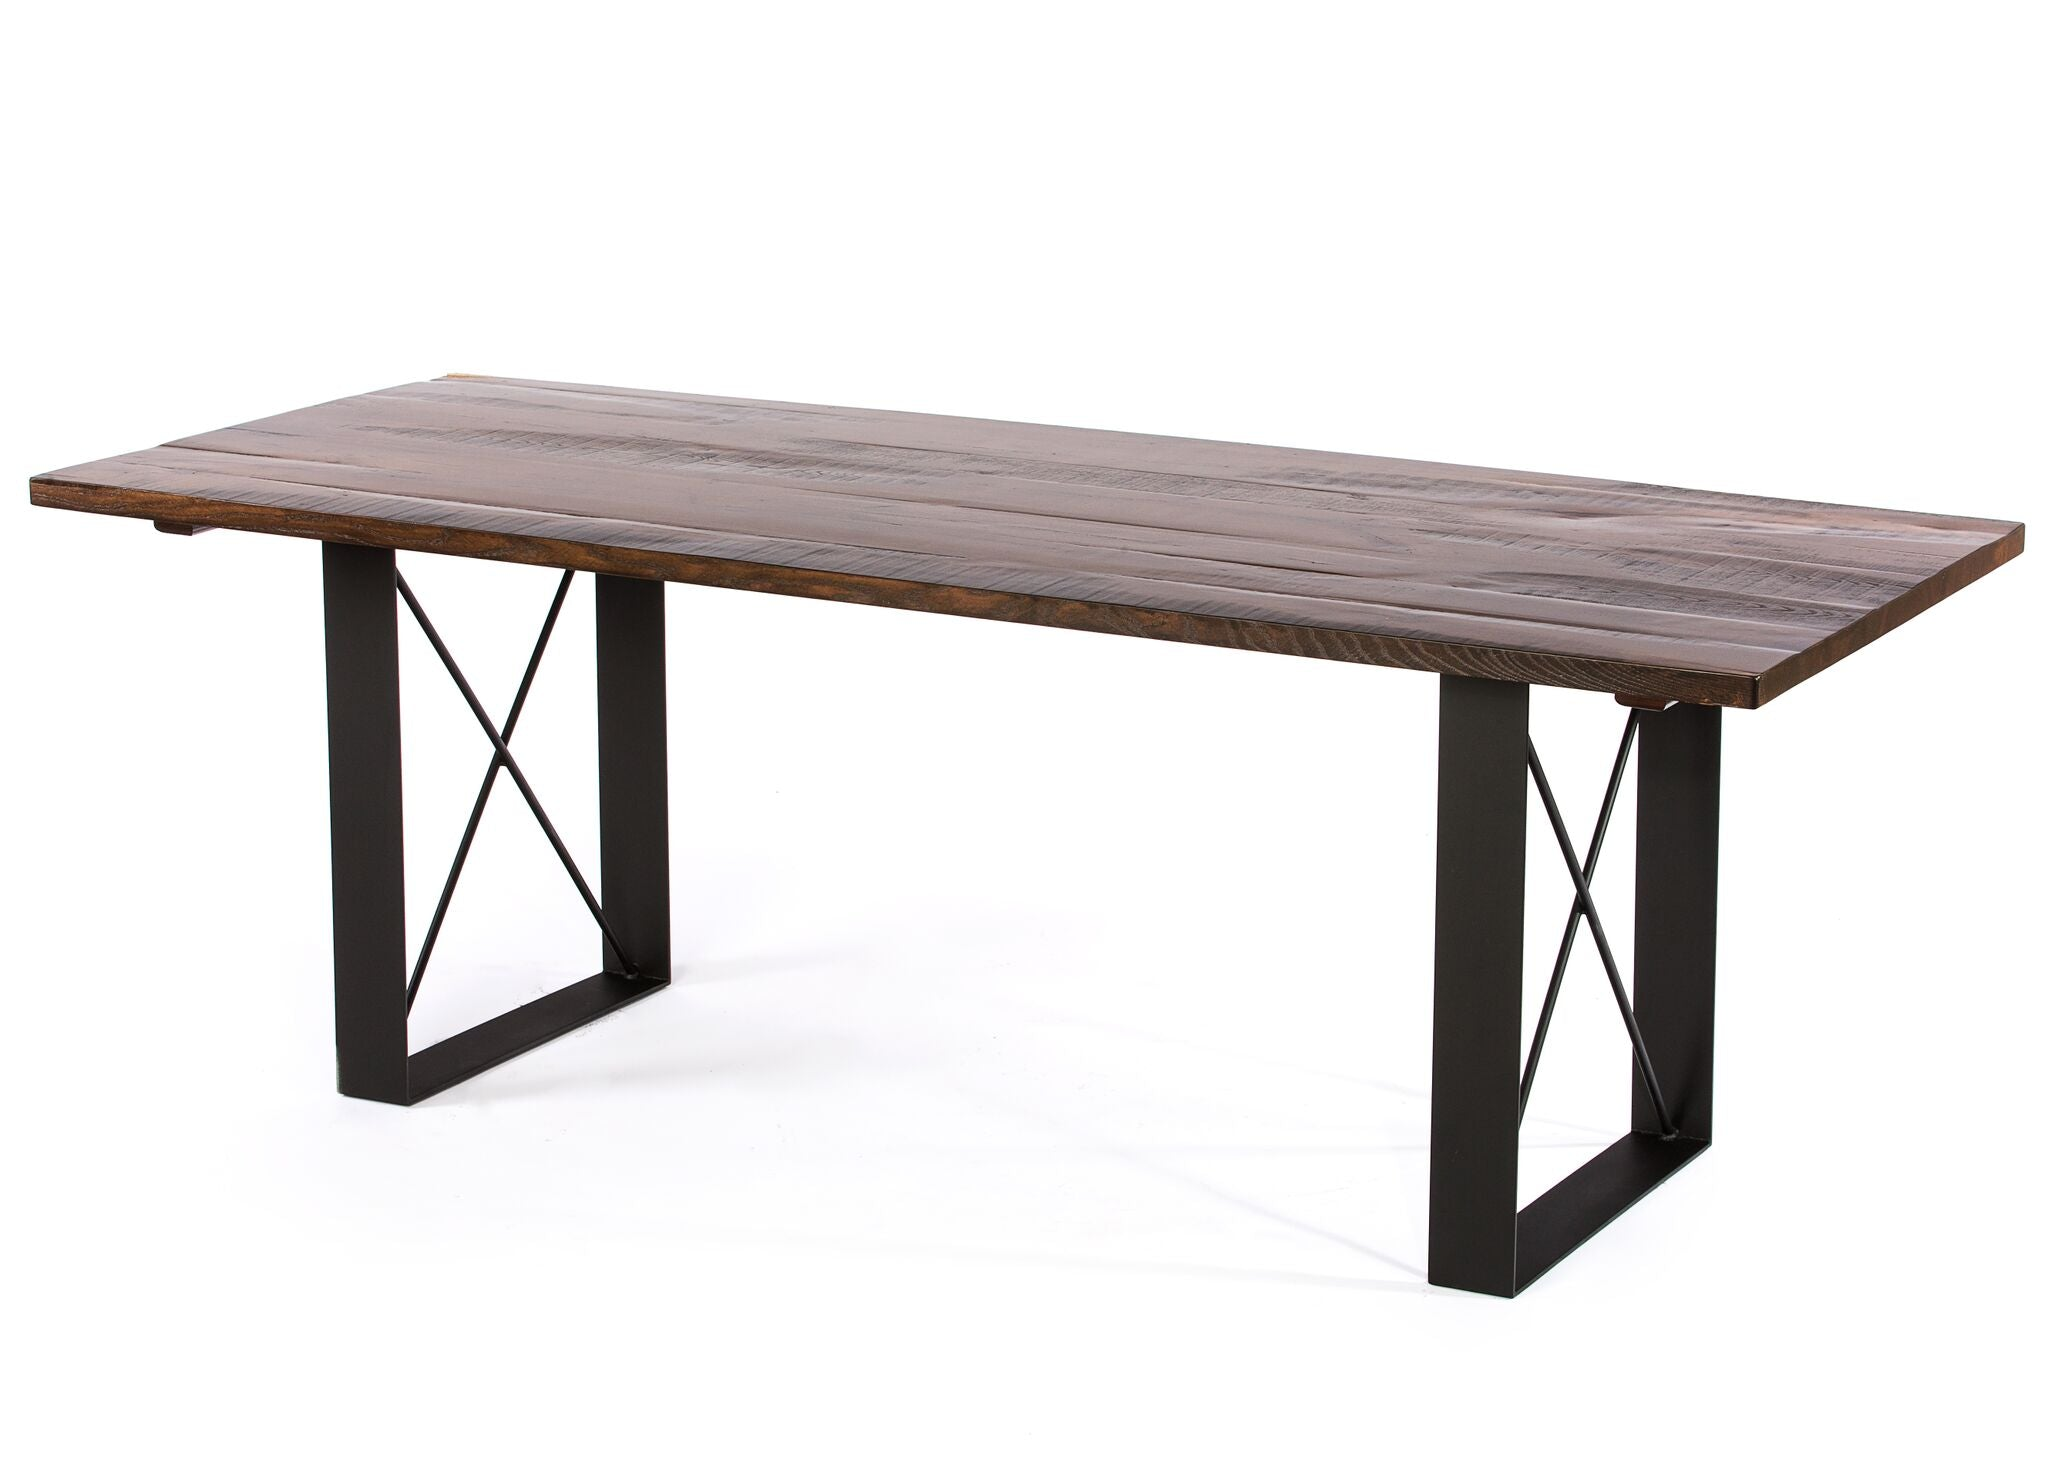 "Wood Tables | Soho Table | Natural Reclaimed Oak | Black | CUSTOM SIZE L 96 W 30 H 30 | 2"" kingston-krafts-zinc-tables."